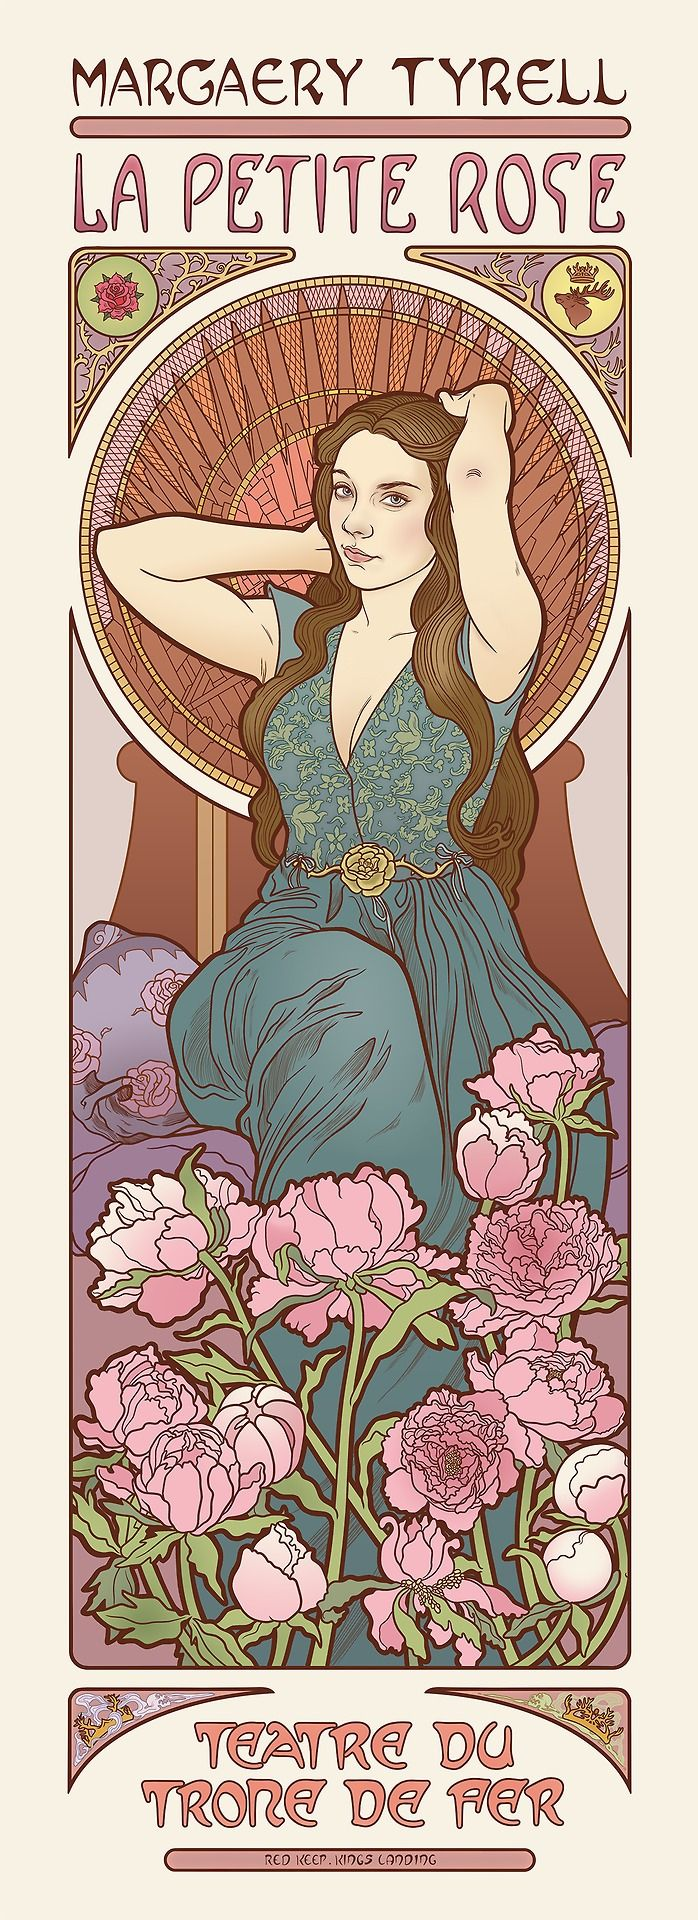 Game of Thrones ladies get melancholy Mucha-style theater posters (from io9.com) The Lady Margaery.